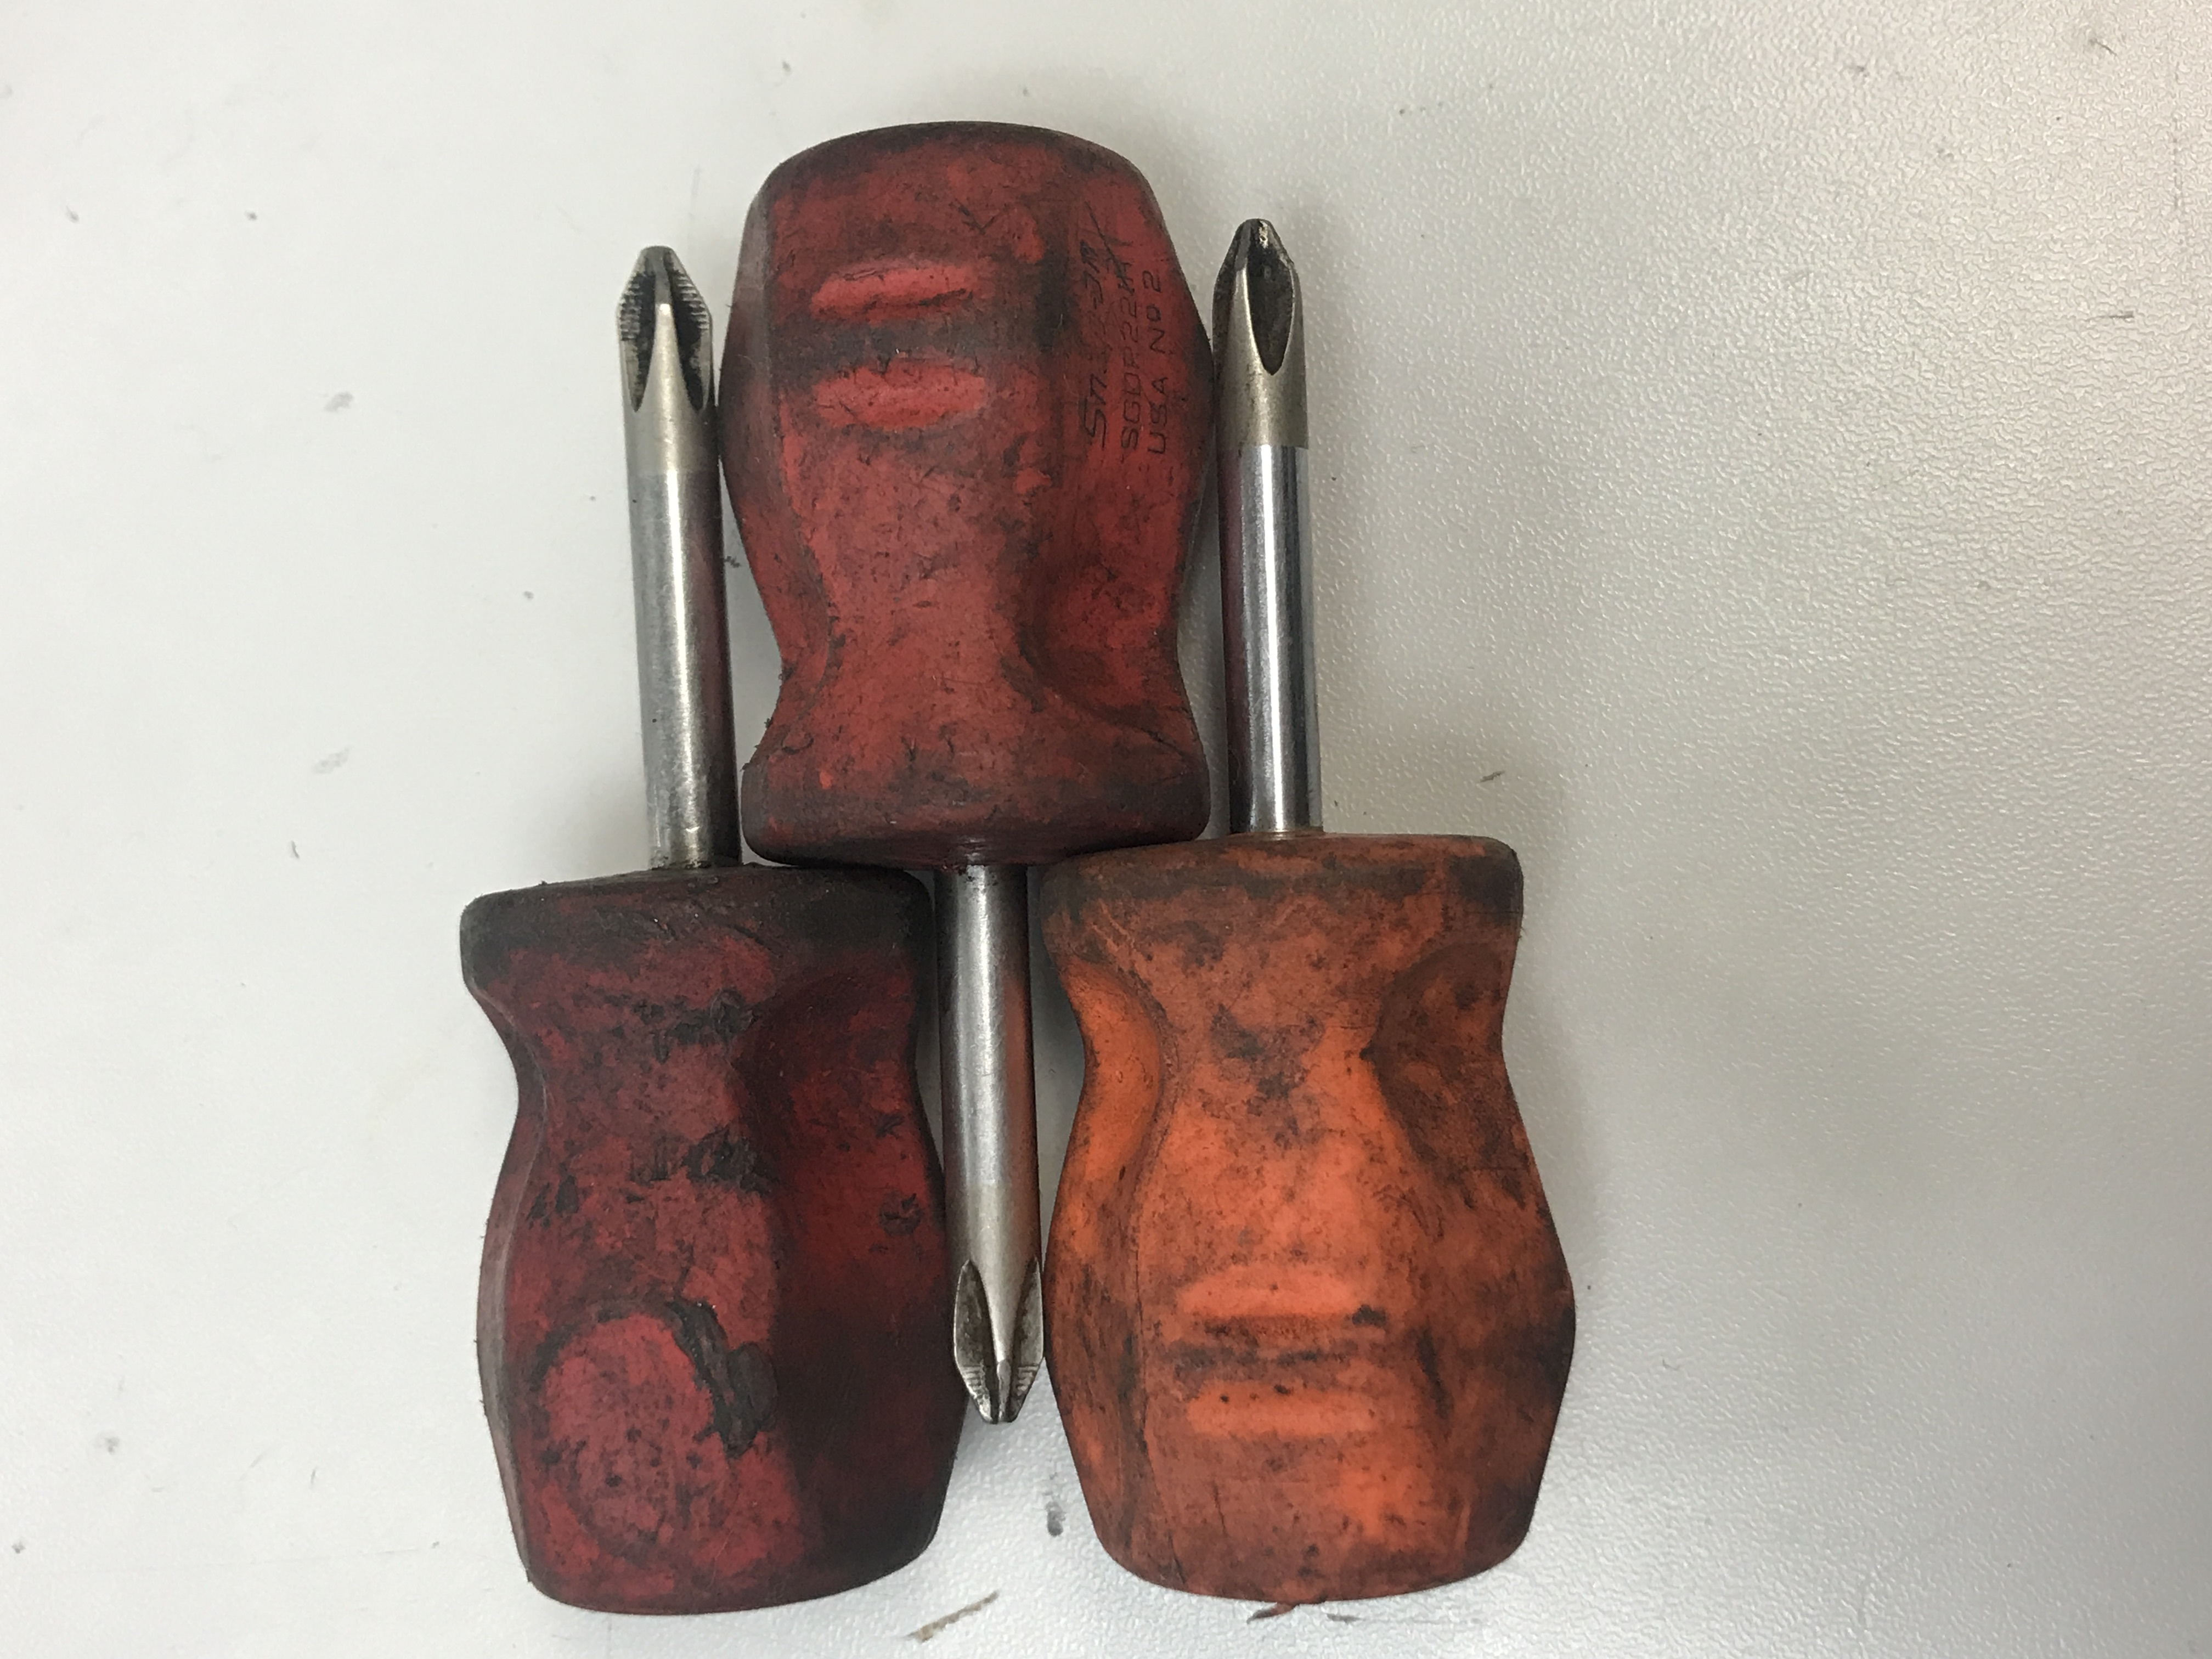 3 STUBBY PHILLIPS HEAD SNAP ON SCRWEDRIVERS